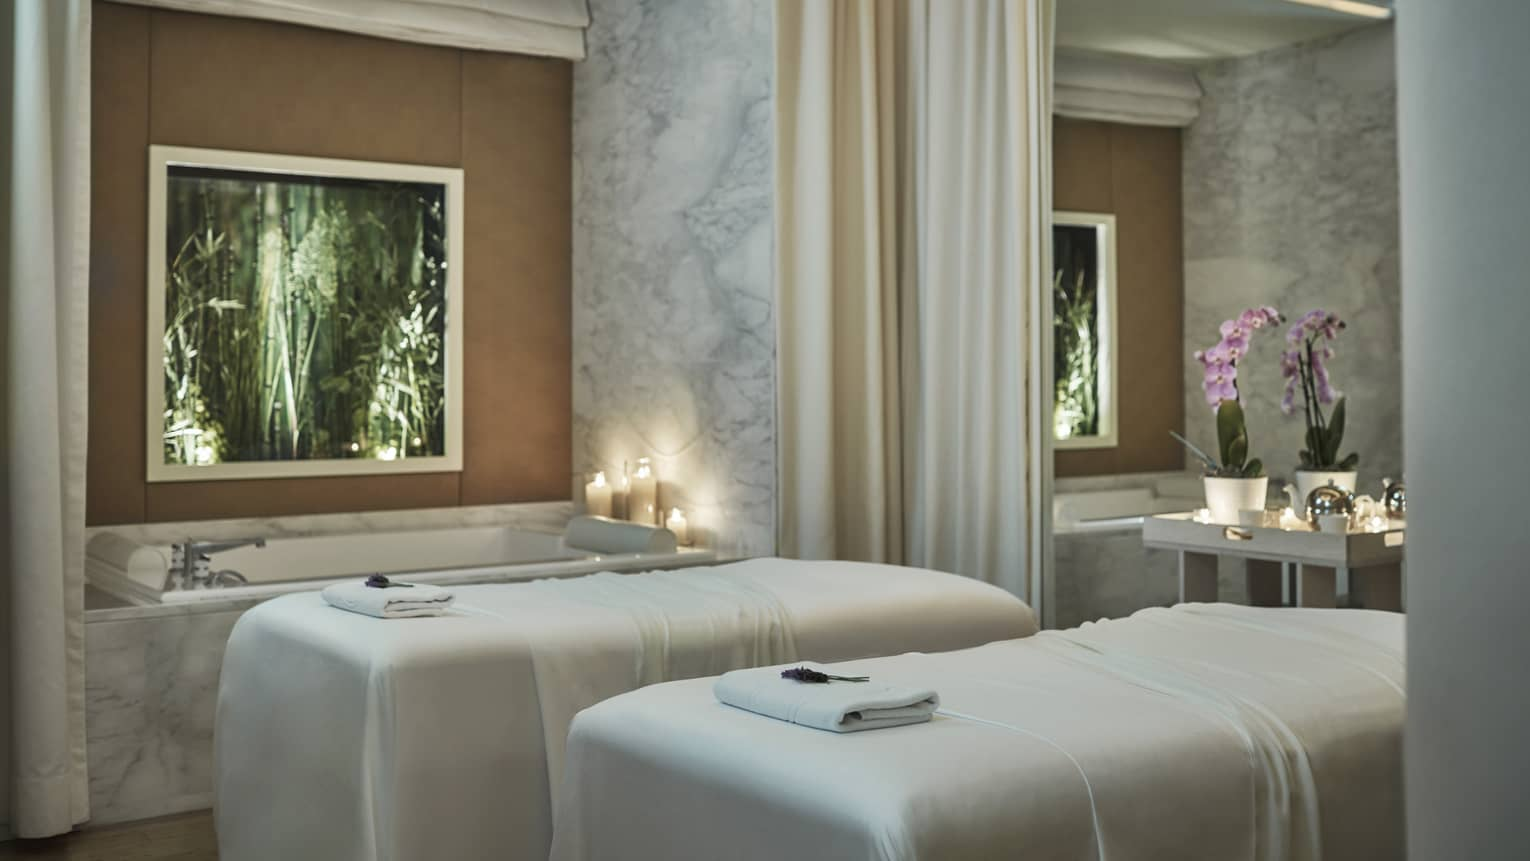 Spa couples massage beds with white sheets by candlelit tub